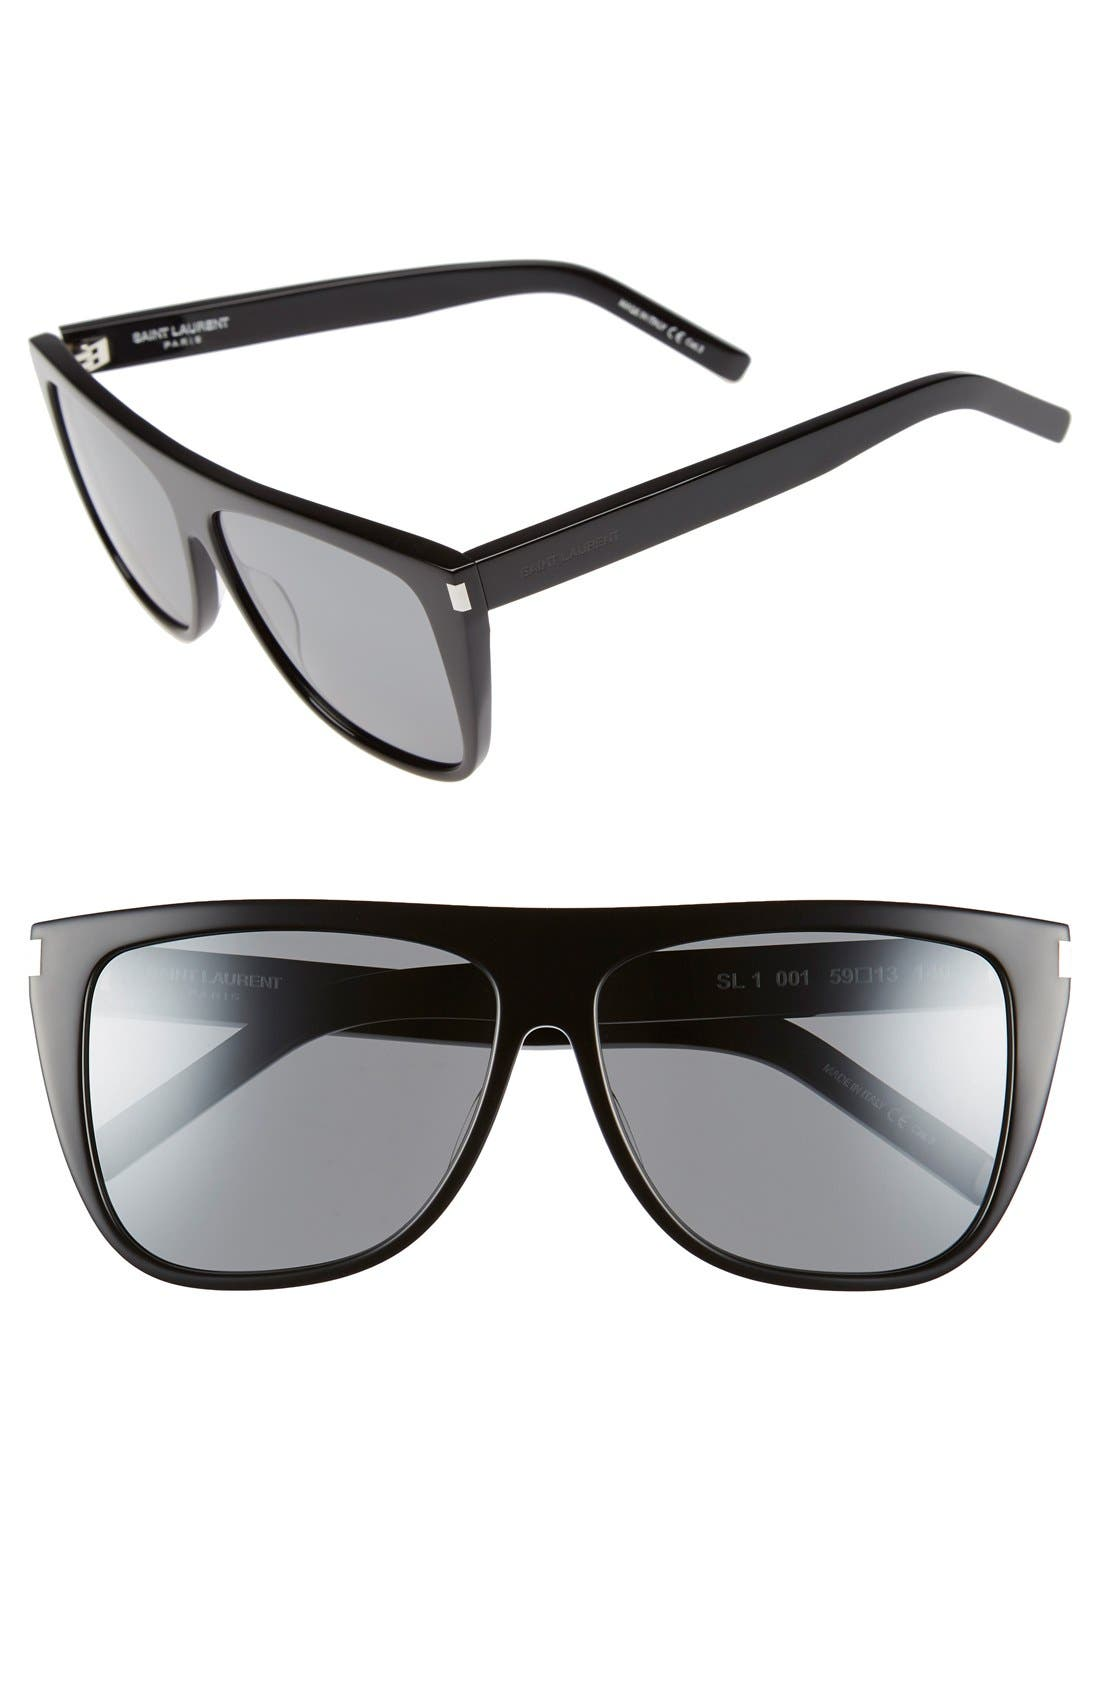 Saint Laurent SL1 59mm Flat Top Sunglasses